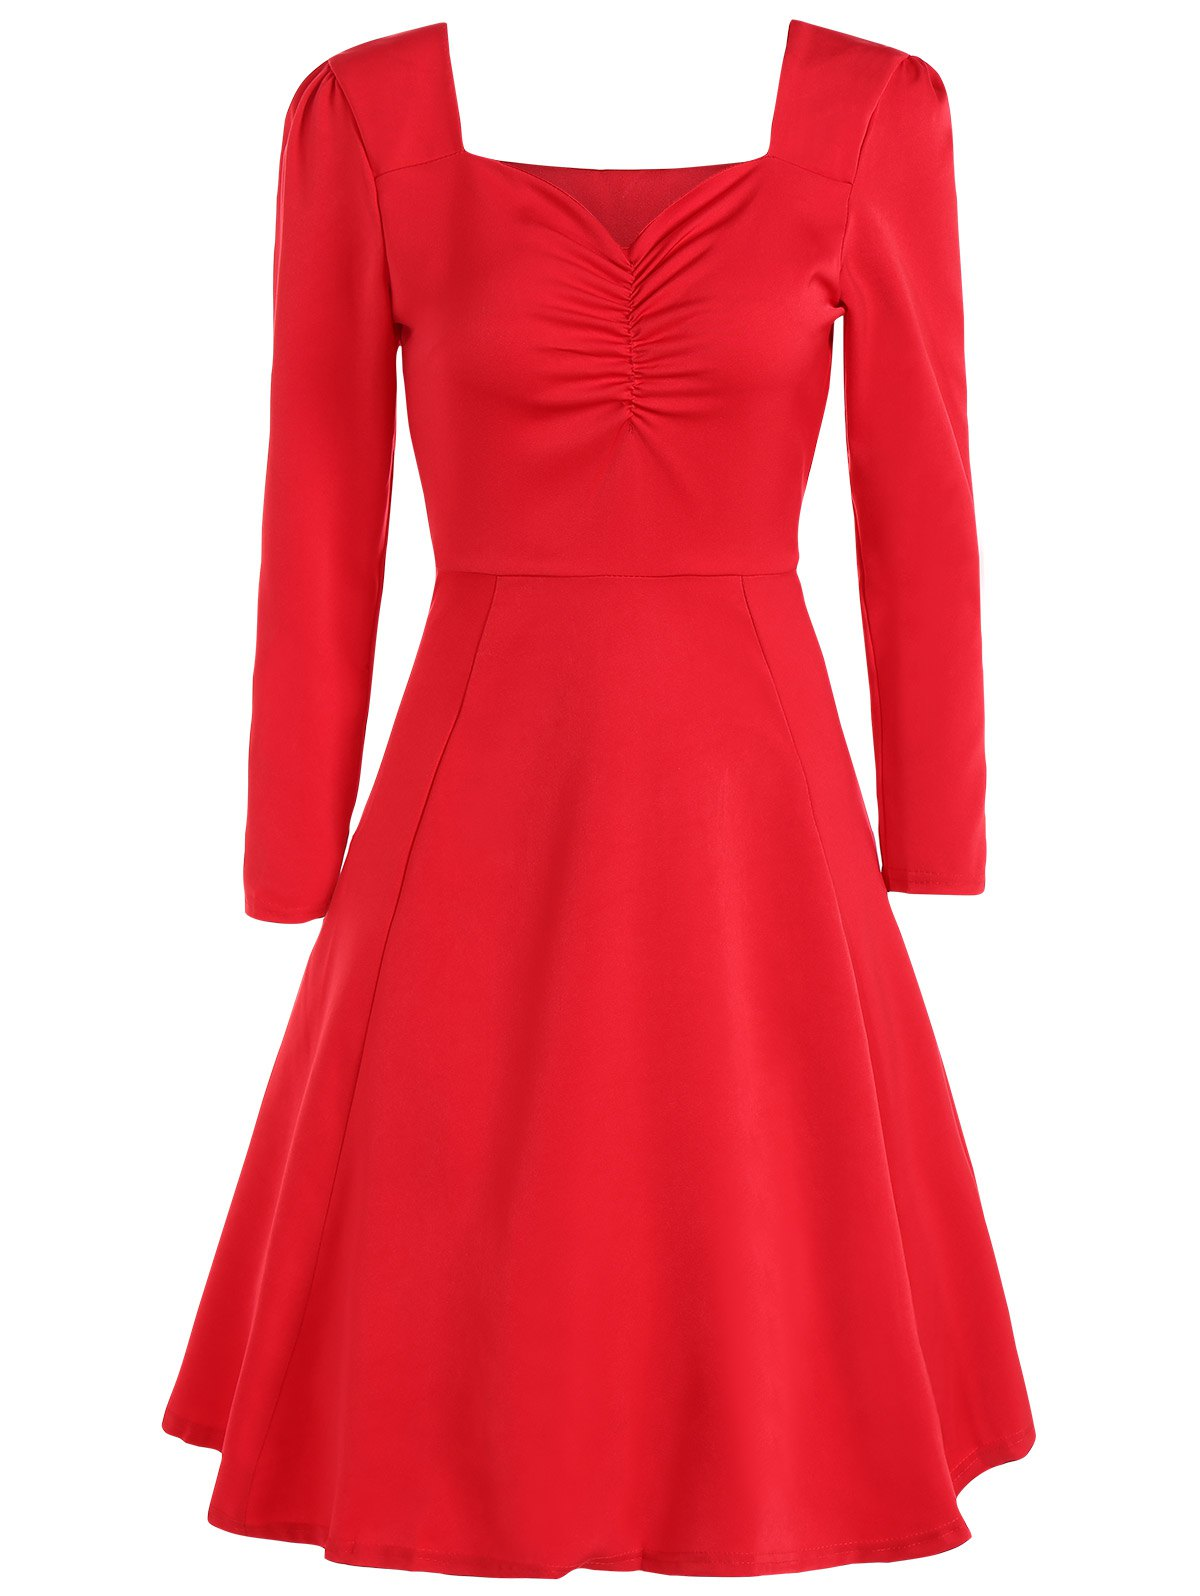 New Sweetheart Neck Long Sleeve Swing Flare Dress